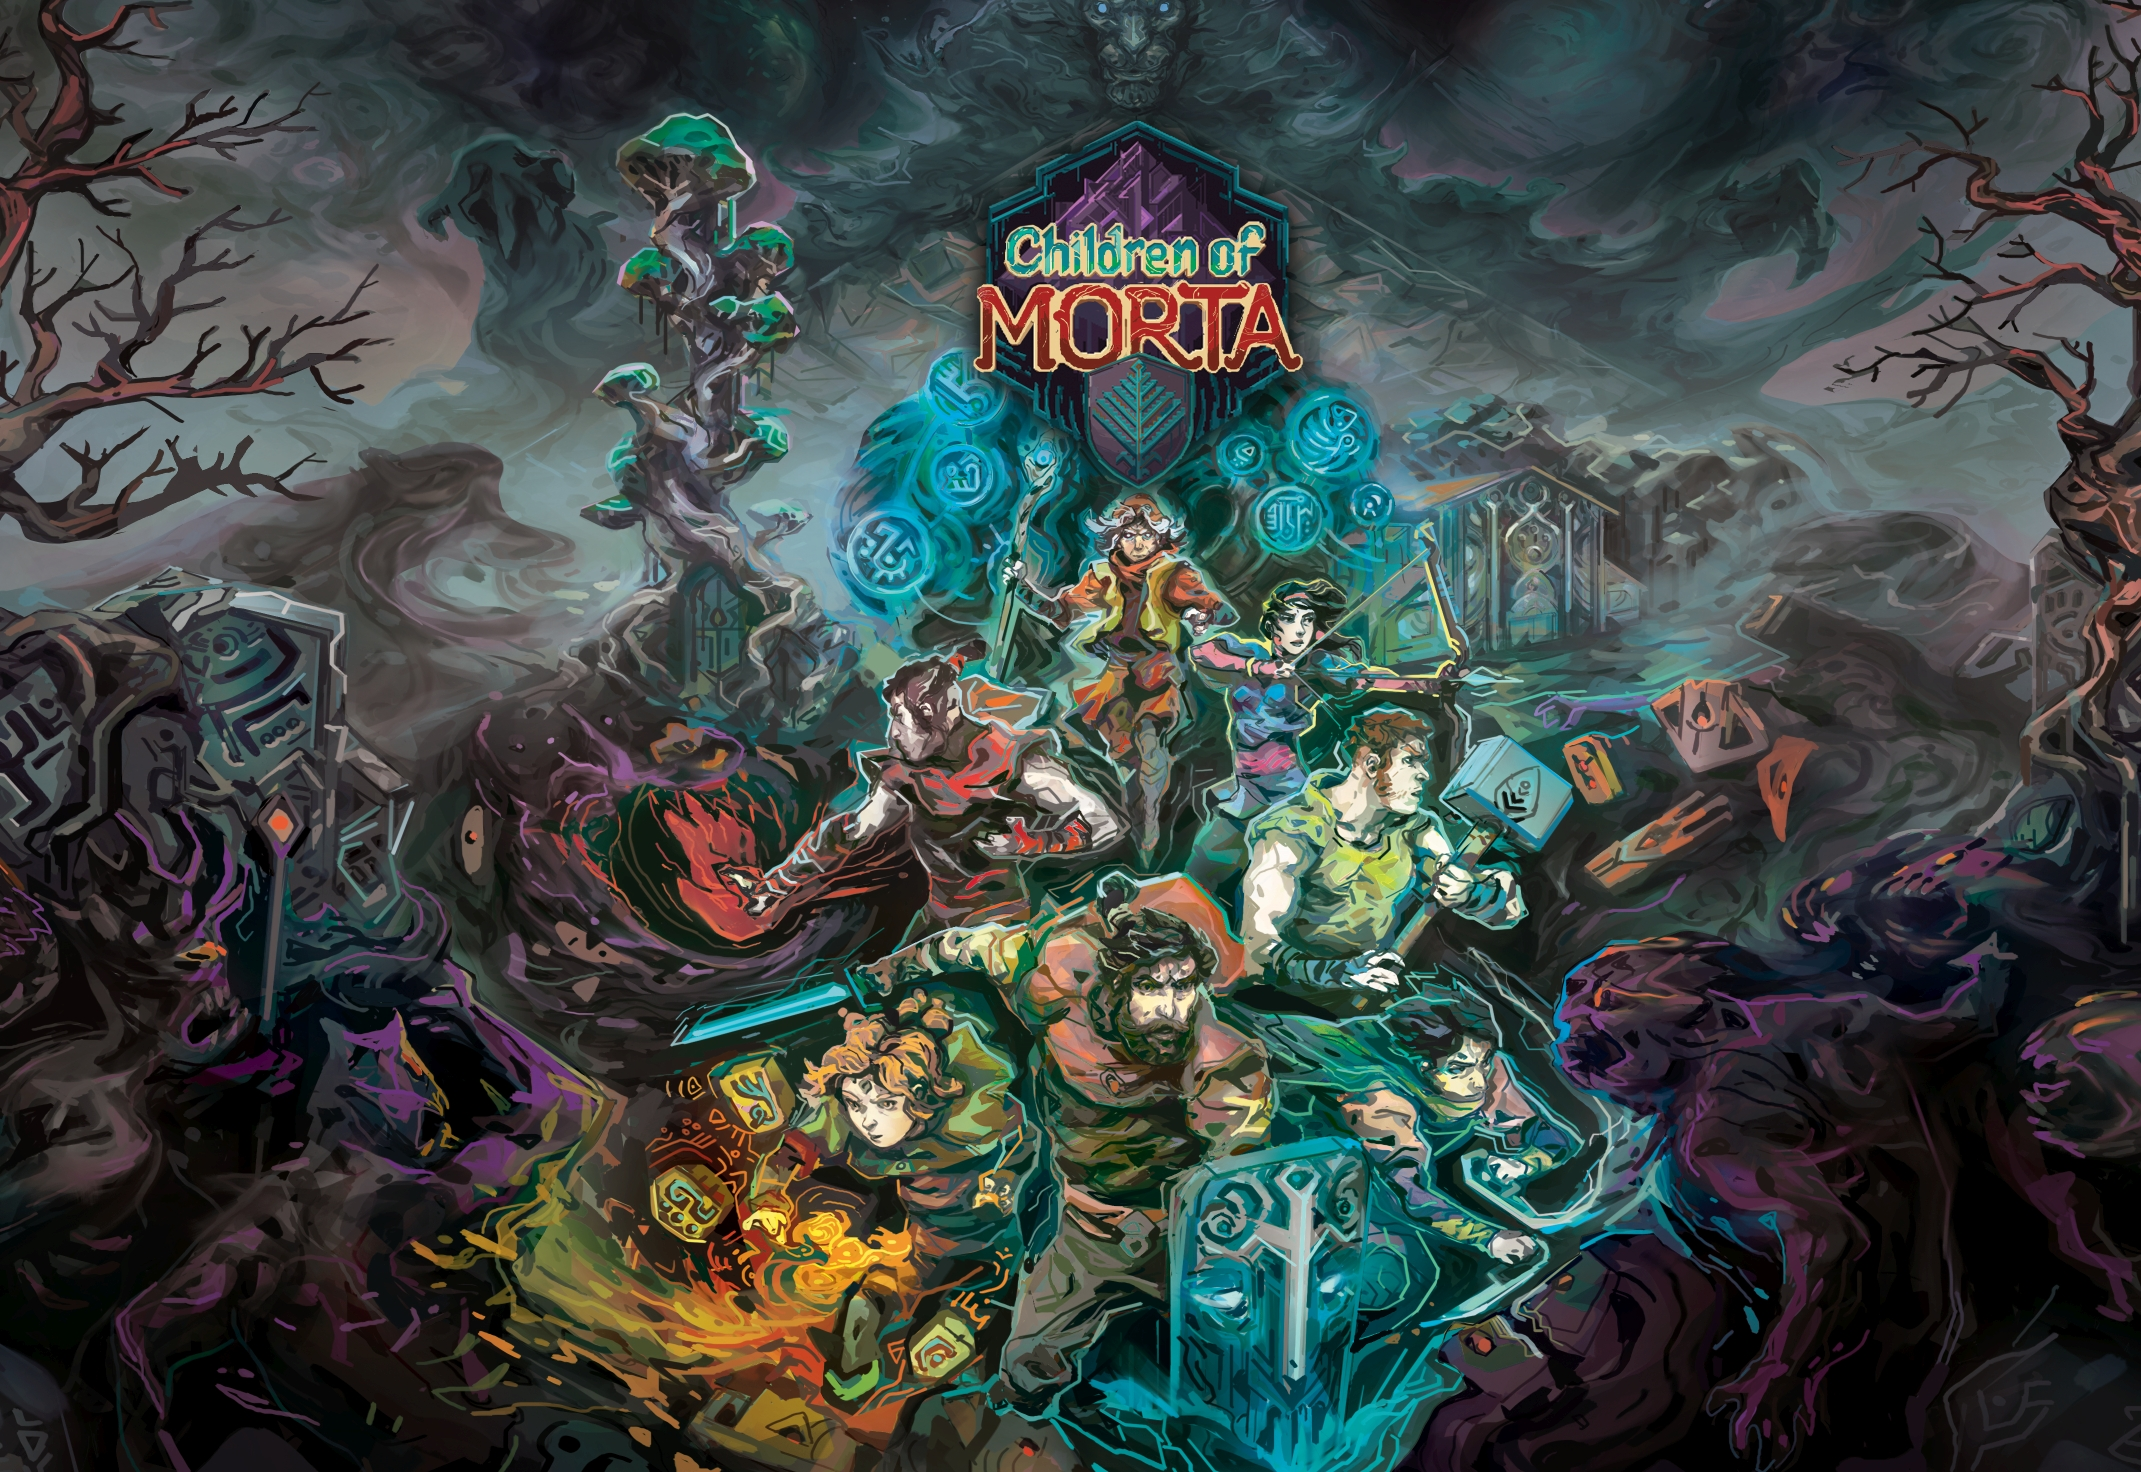 Children of Morta: Family Trials DLC is now available for free download